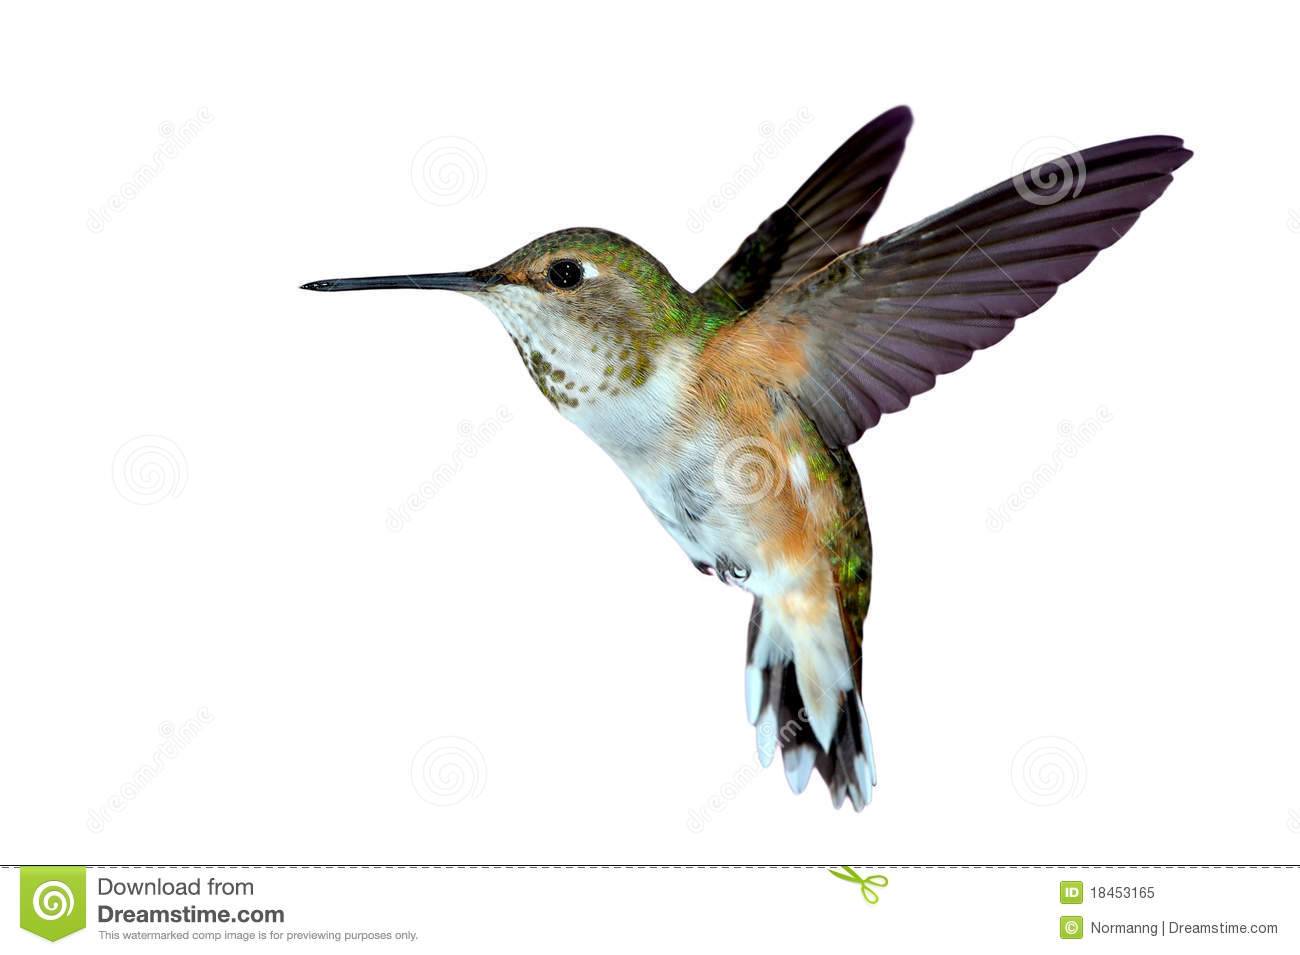 Rufous hummingbird drawing - photo#27